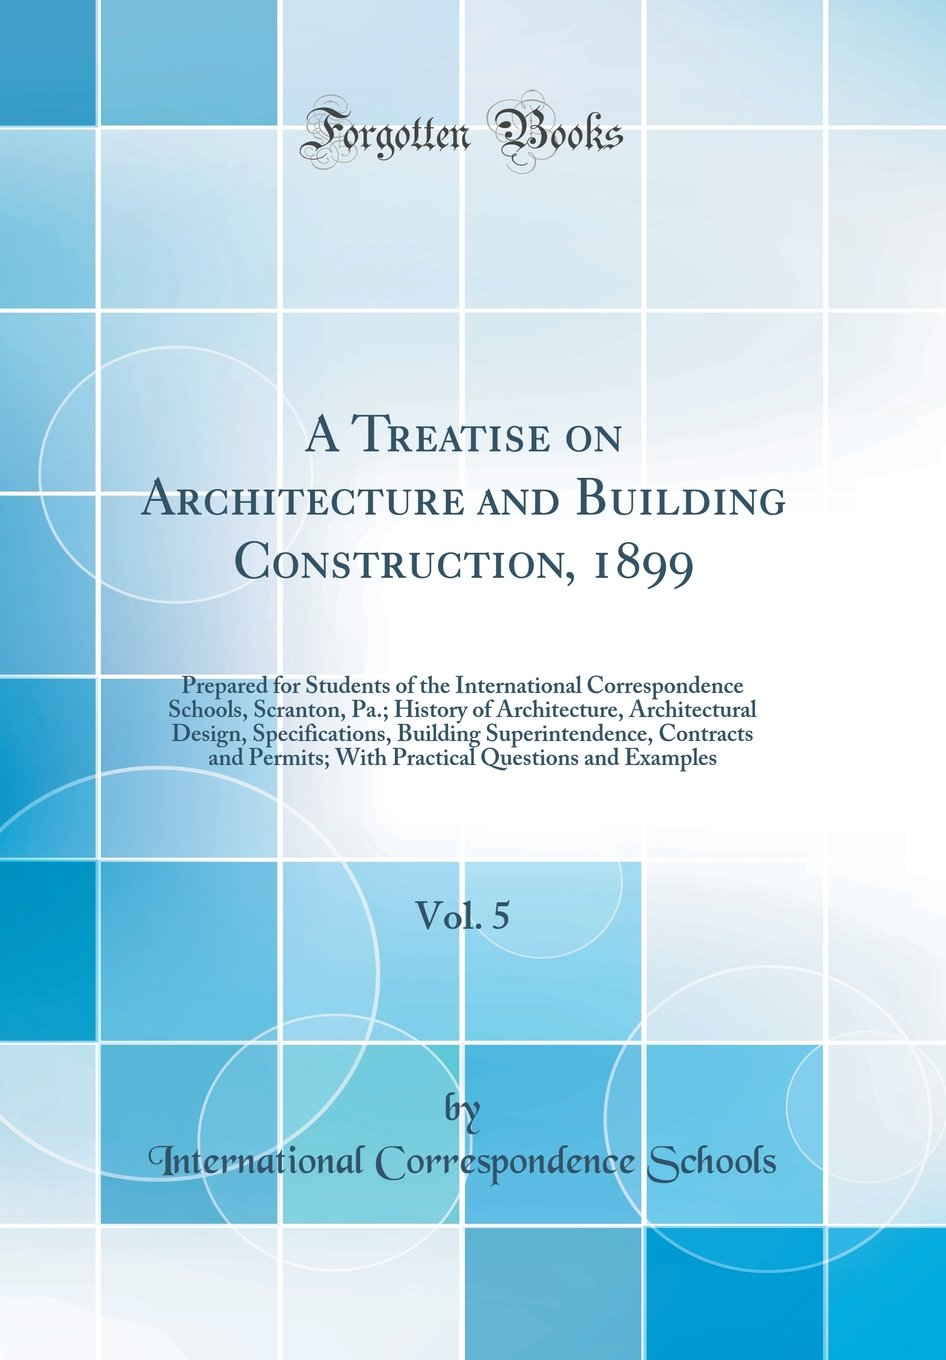 Download A Treatise on Architecture and Building Construction, 1899, Vol. 5: Prepared for Students of the International Correspondence Schools, Scranton, Pa.; ... Building Superintendence, Contracts and Pe pdf